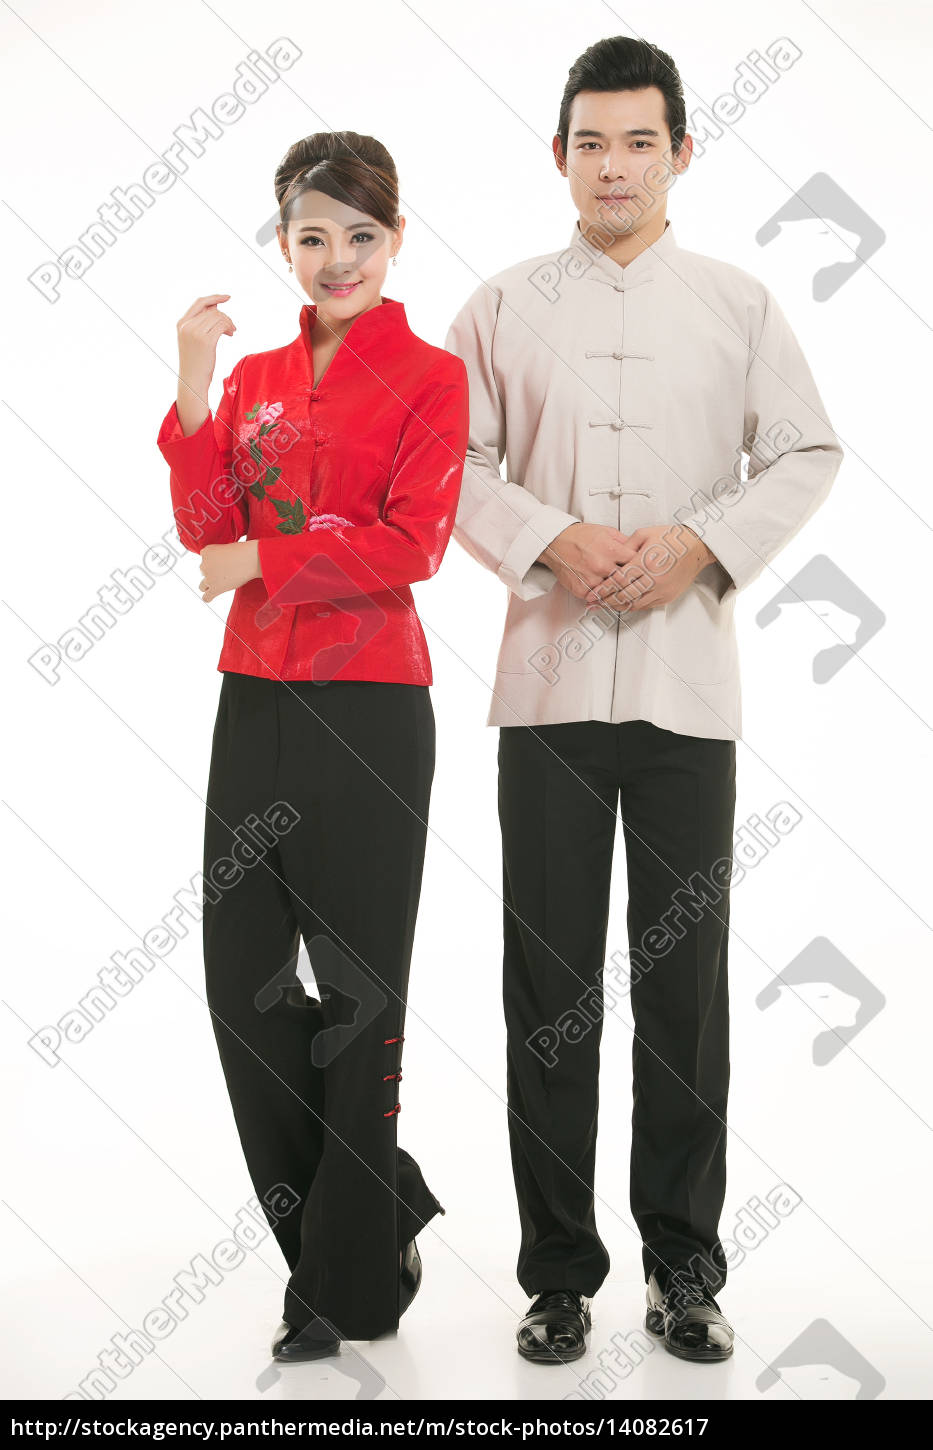 wearing, chinese, clothing, waiter, in, front - 14082617